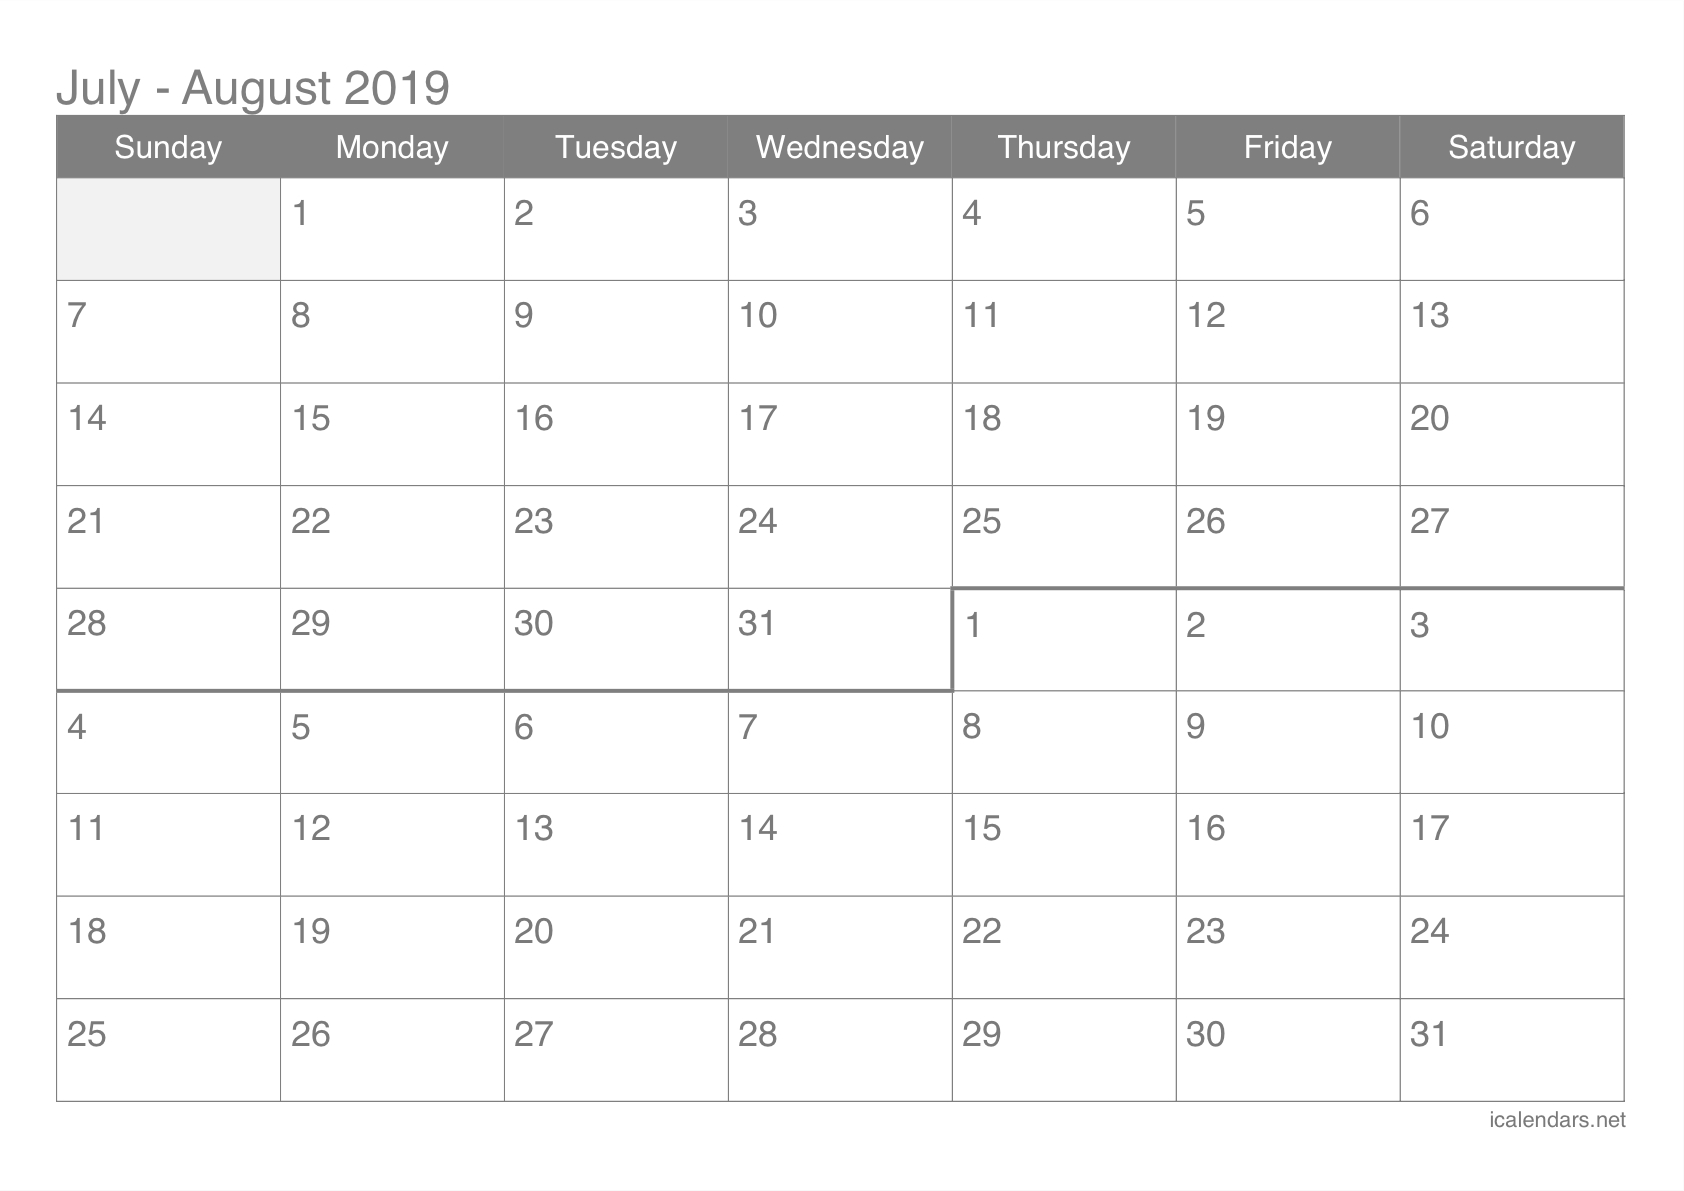 July And August 2019 Printable Calendar - Icalendars Calendar 2019 July August